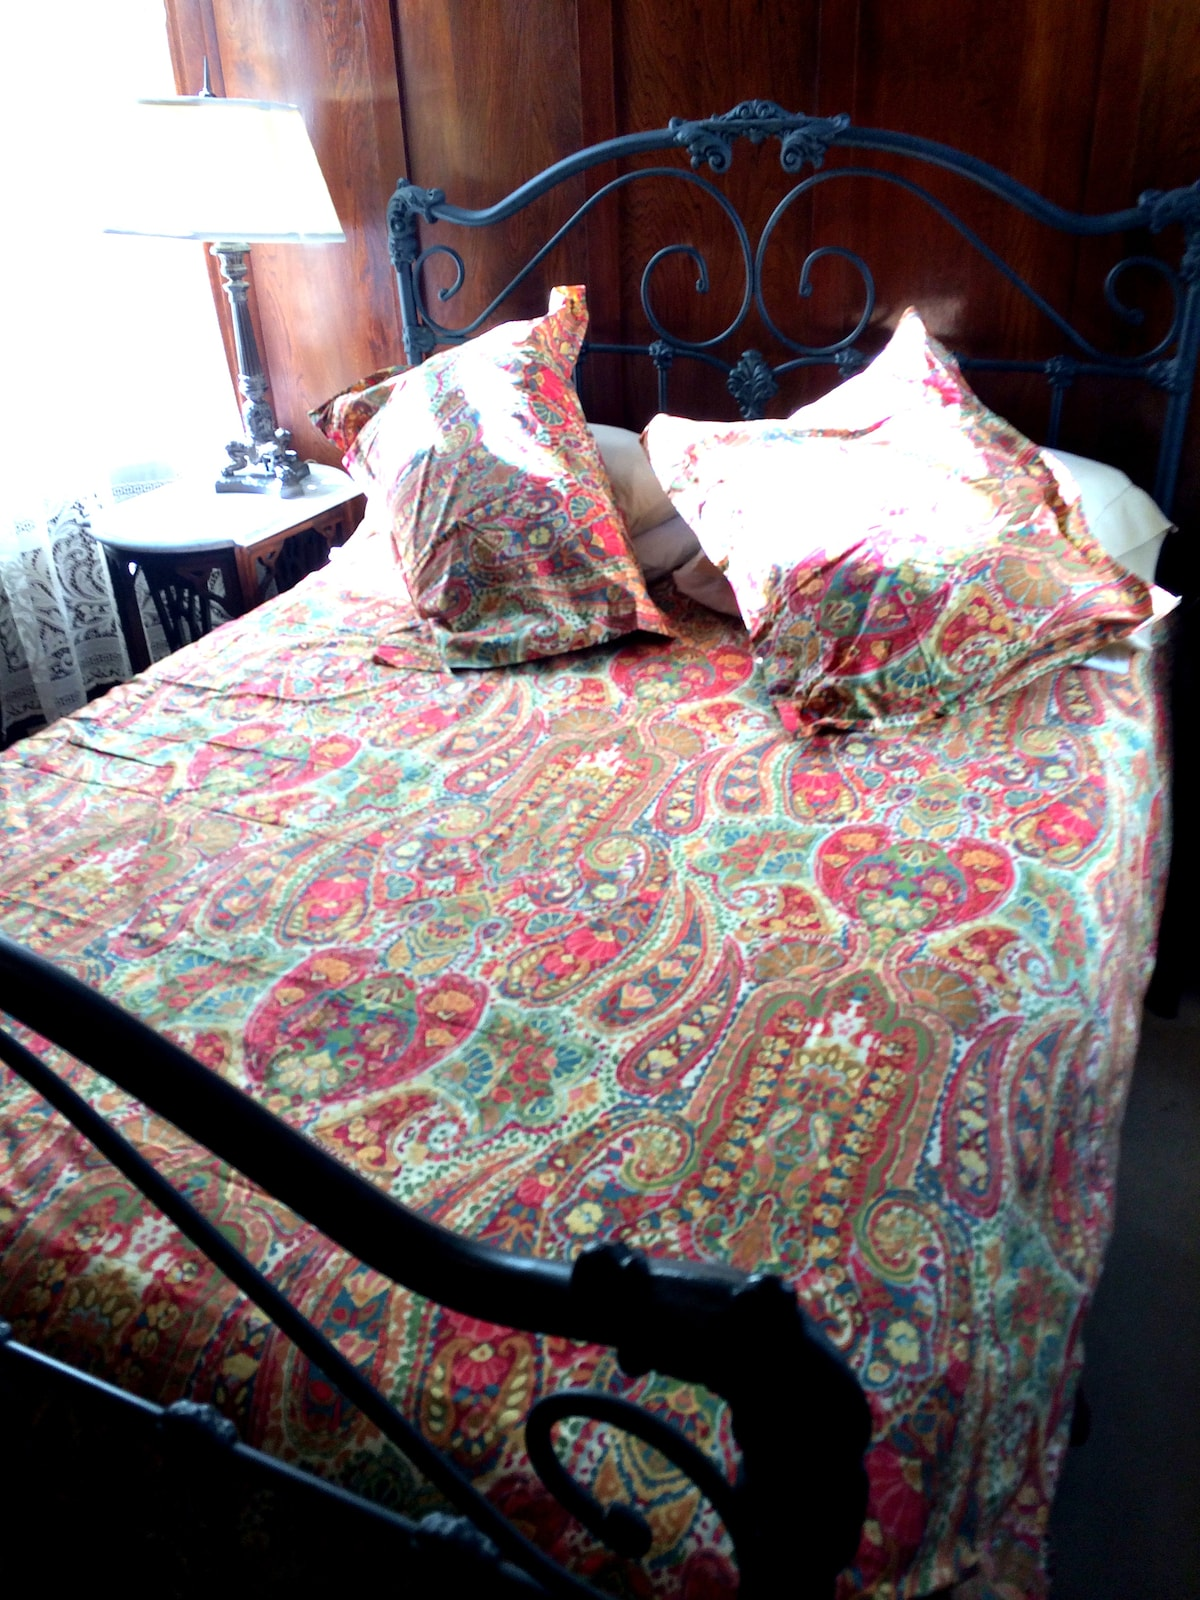 """Feb 2015. We just upgraded the bedding in this room to a collection from Pottery Barn -""""Rosalie"""". I wish we had this when the room was professionally photographed!"""